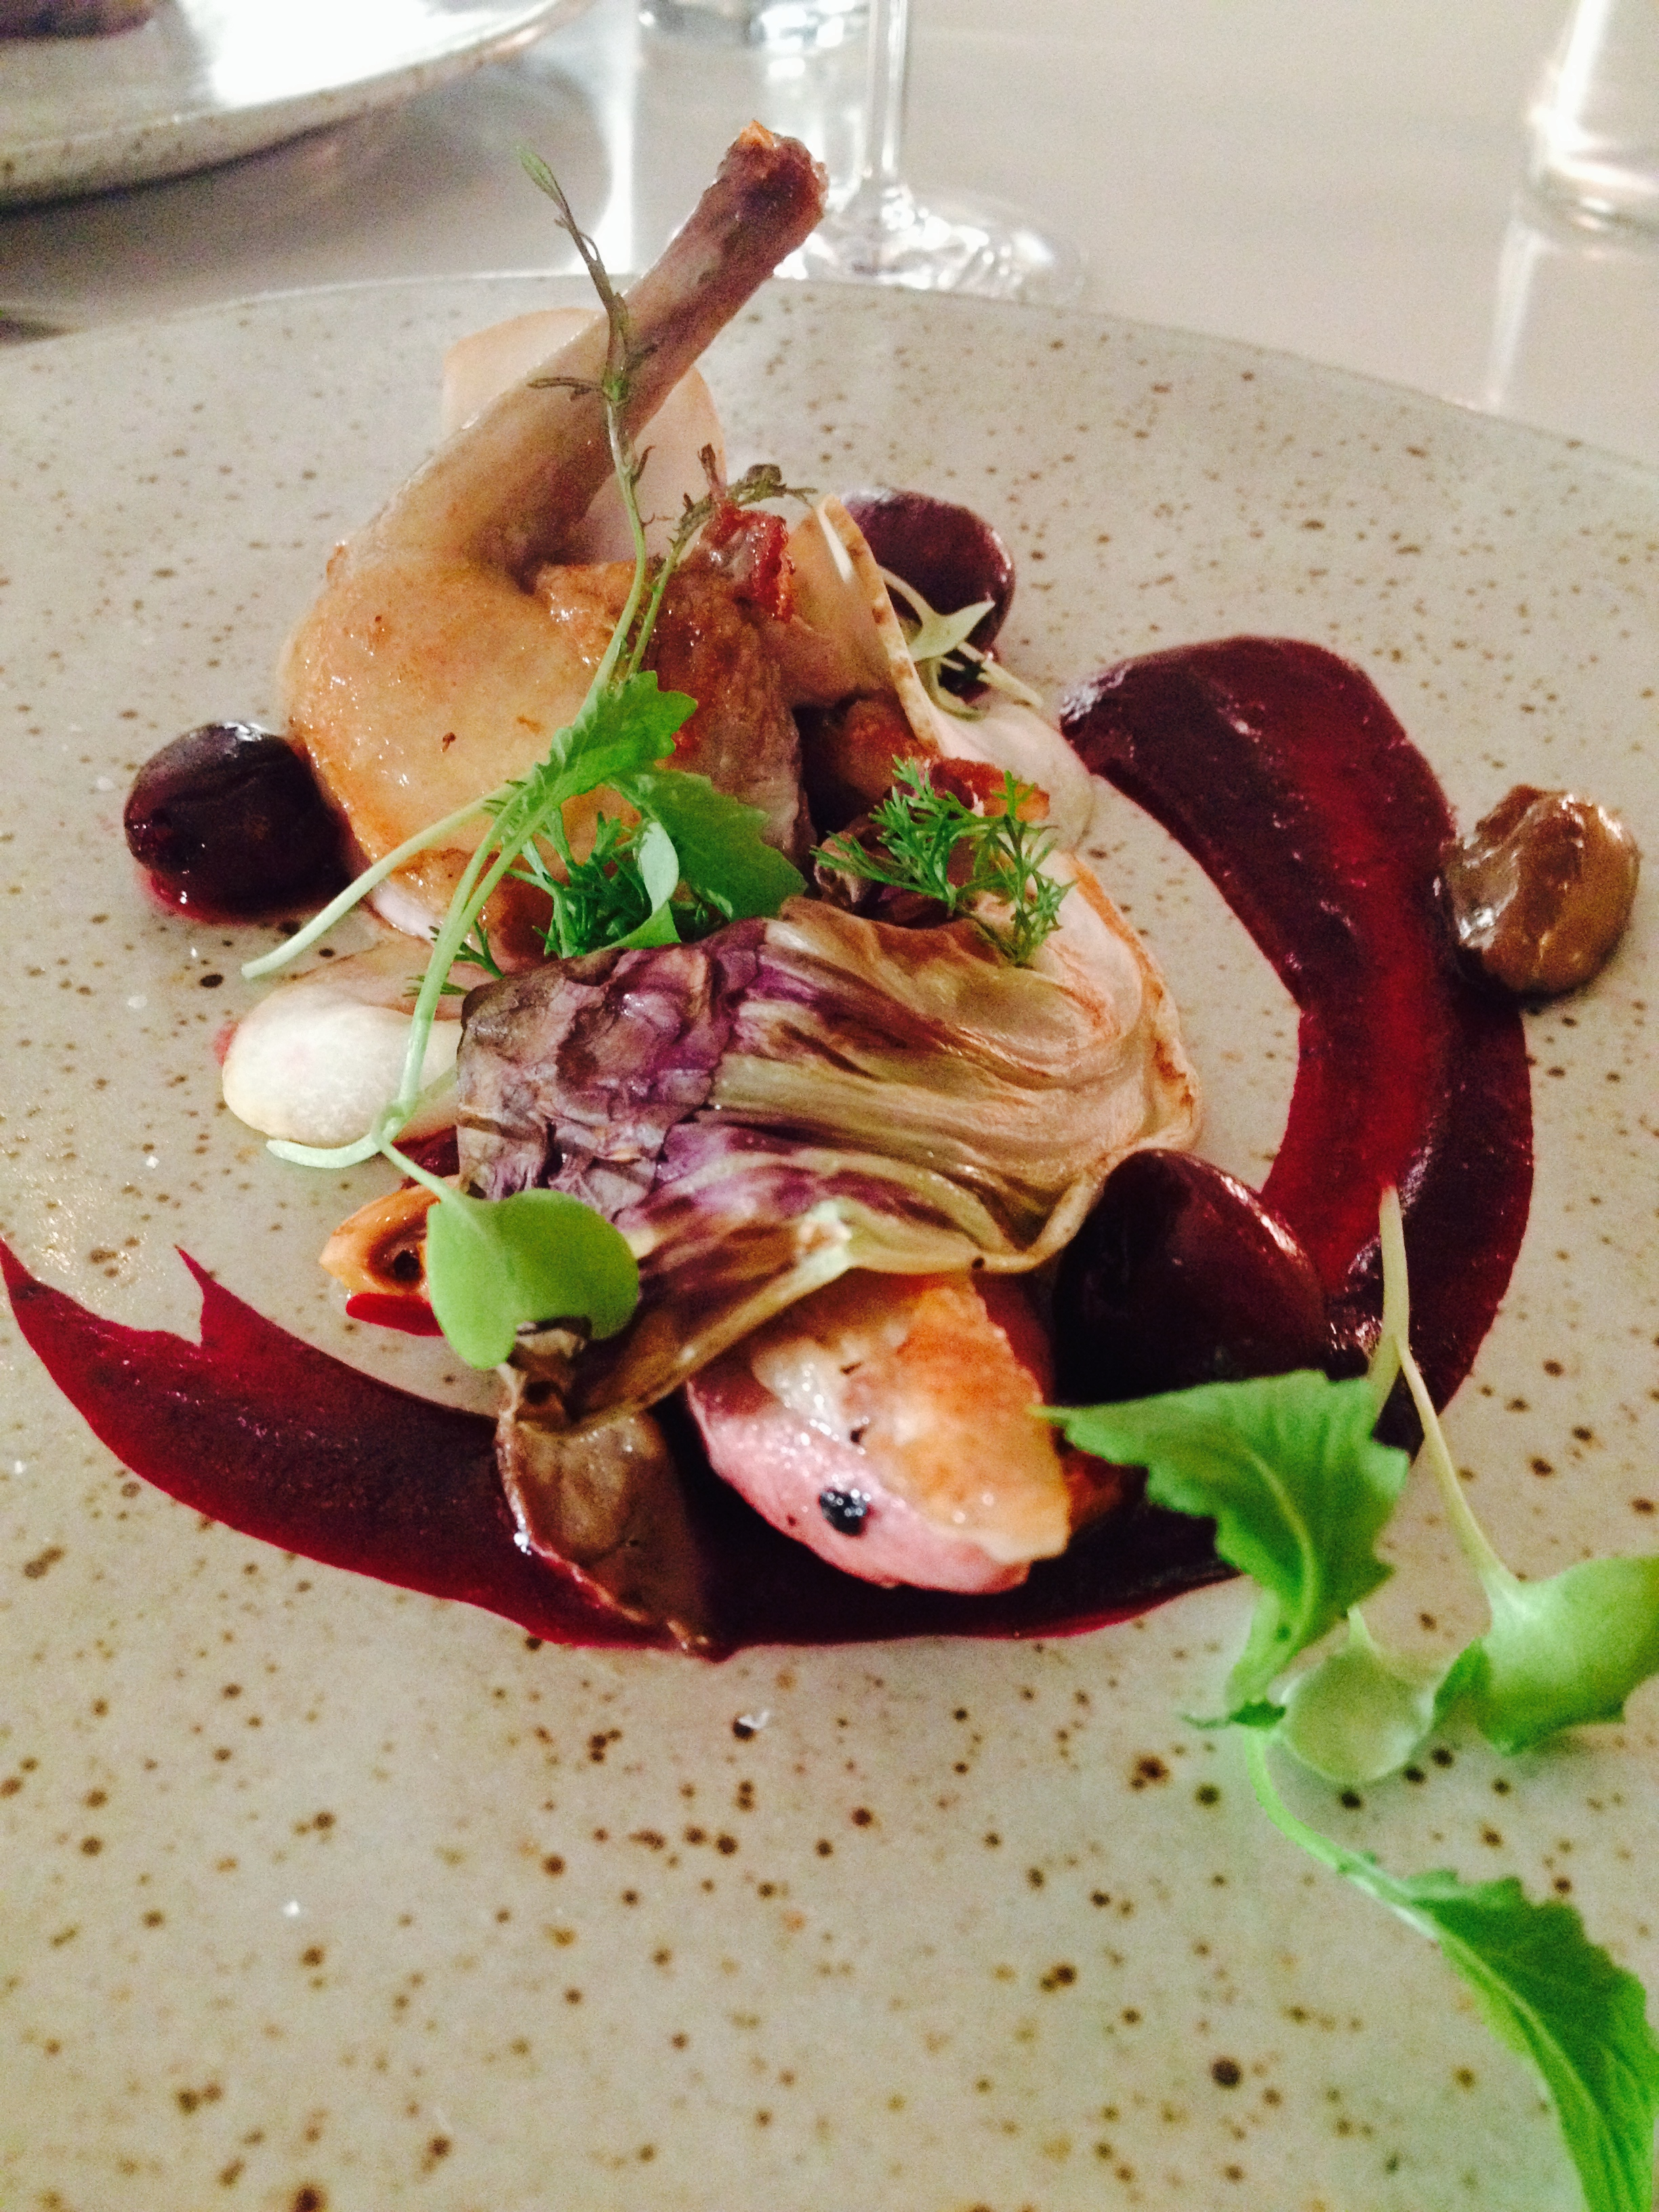 Pigeon with cherry, porcini mushrooms, and hazelnuts.